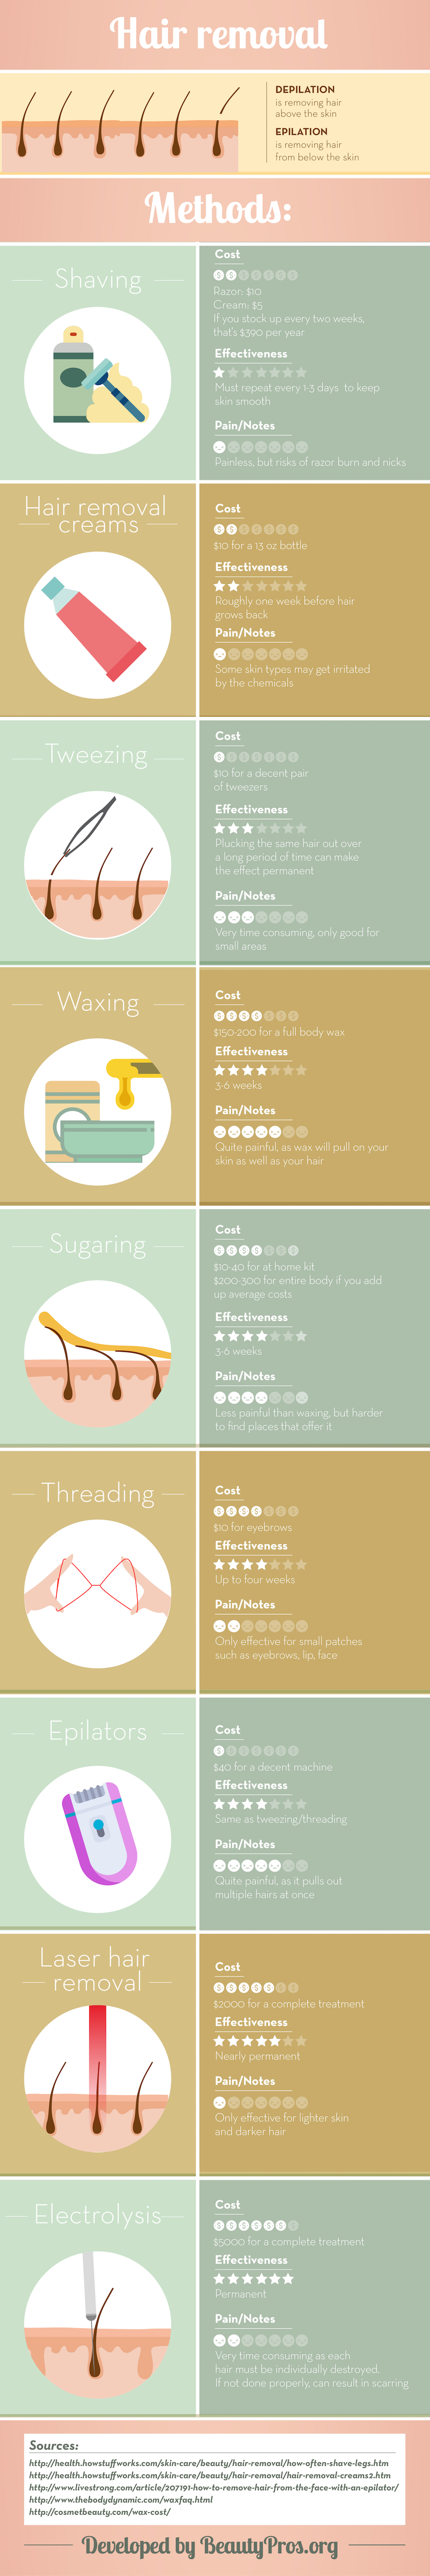 Best Hair Removal Methods